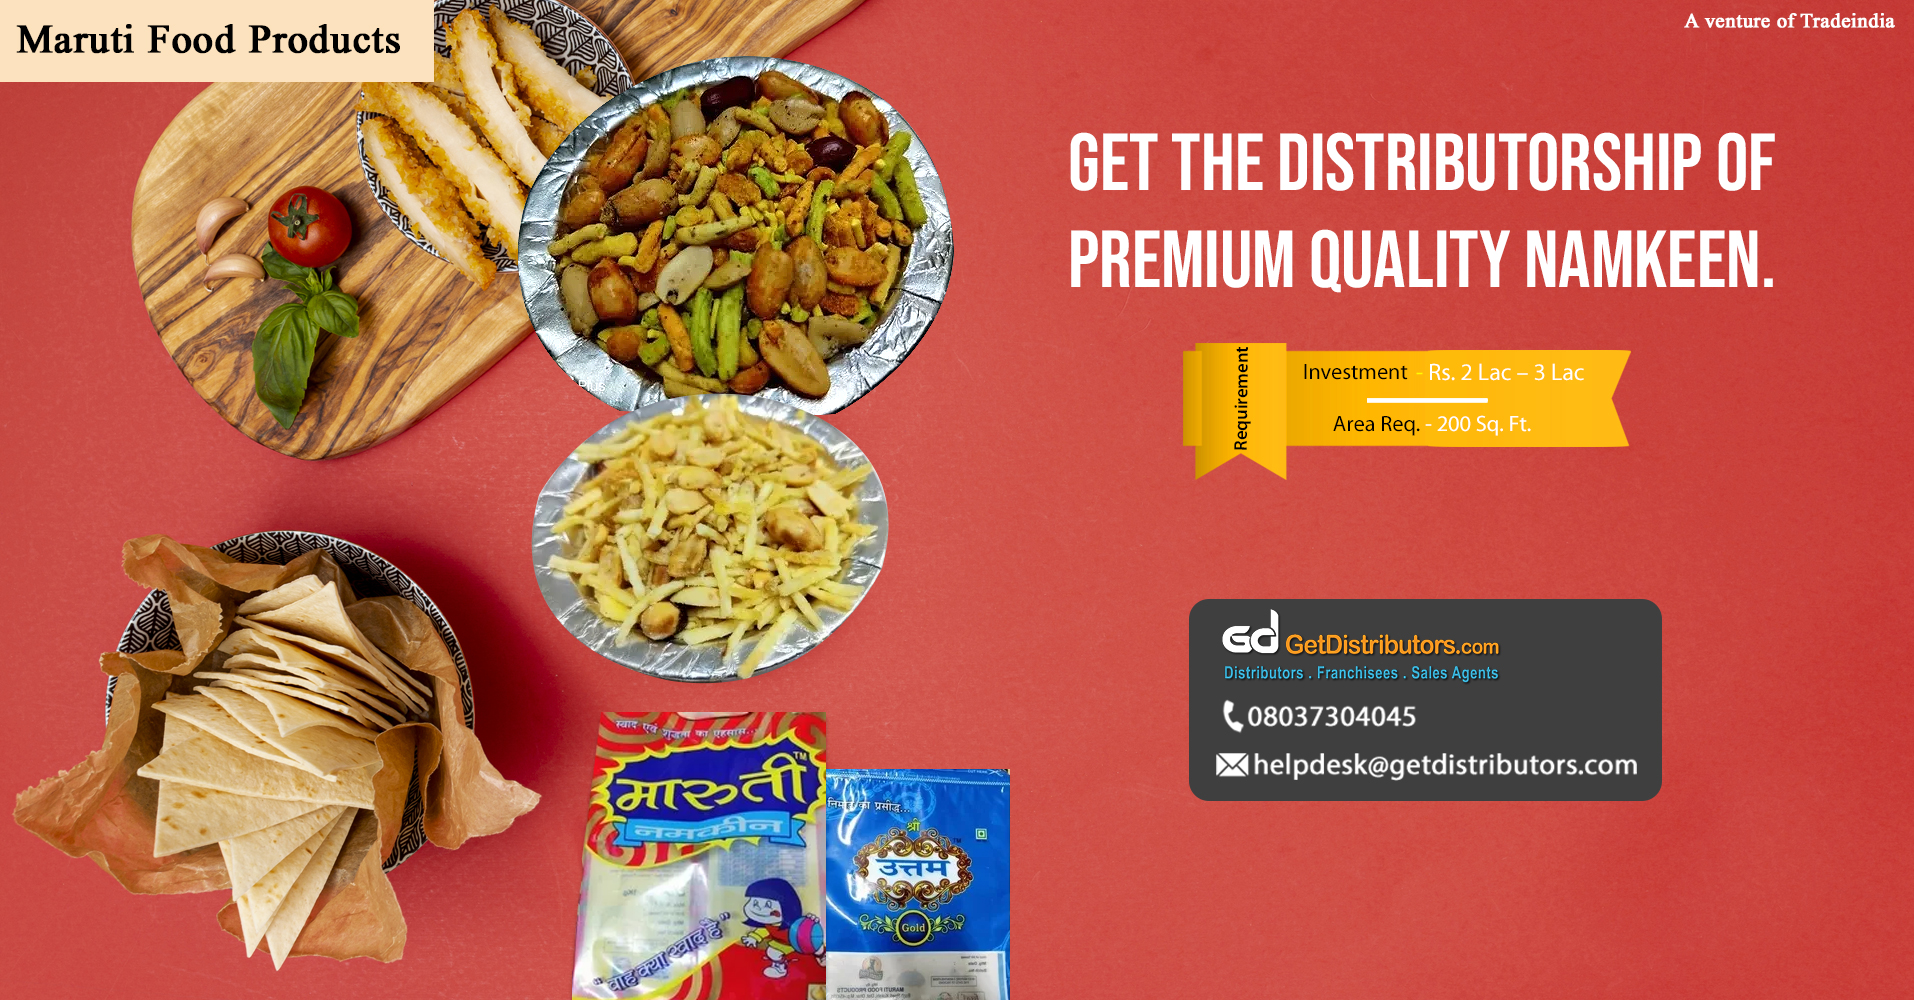 Maruti Food Products